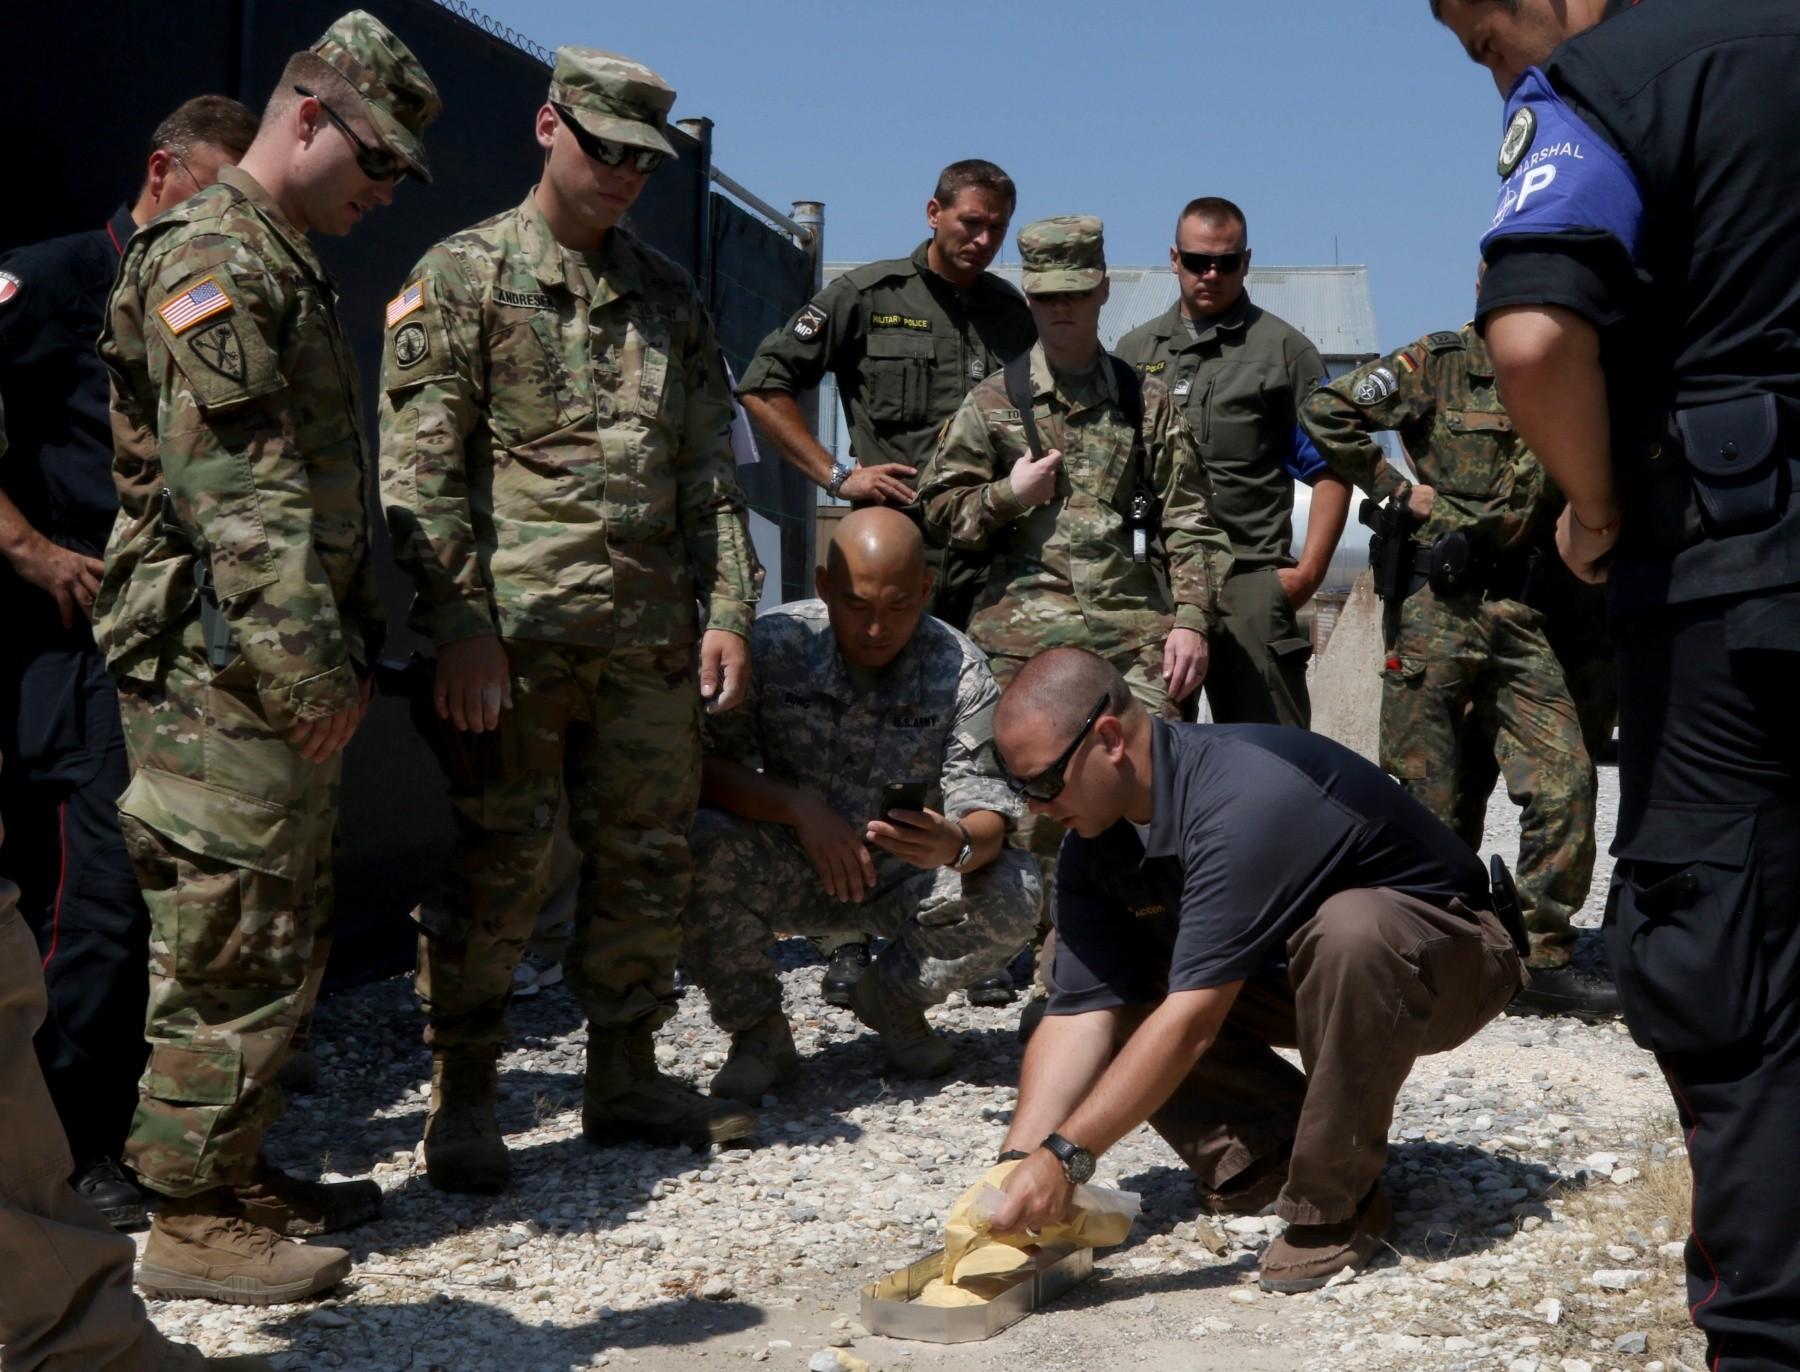 Csi Kosovo Deployed Soldiers Learn Forensic Evidence Collection Article The United States Army